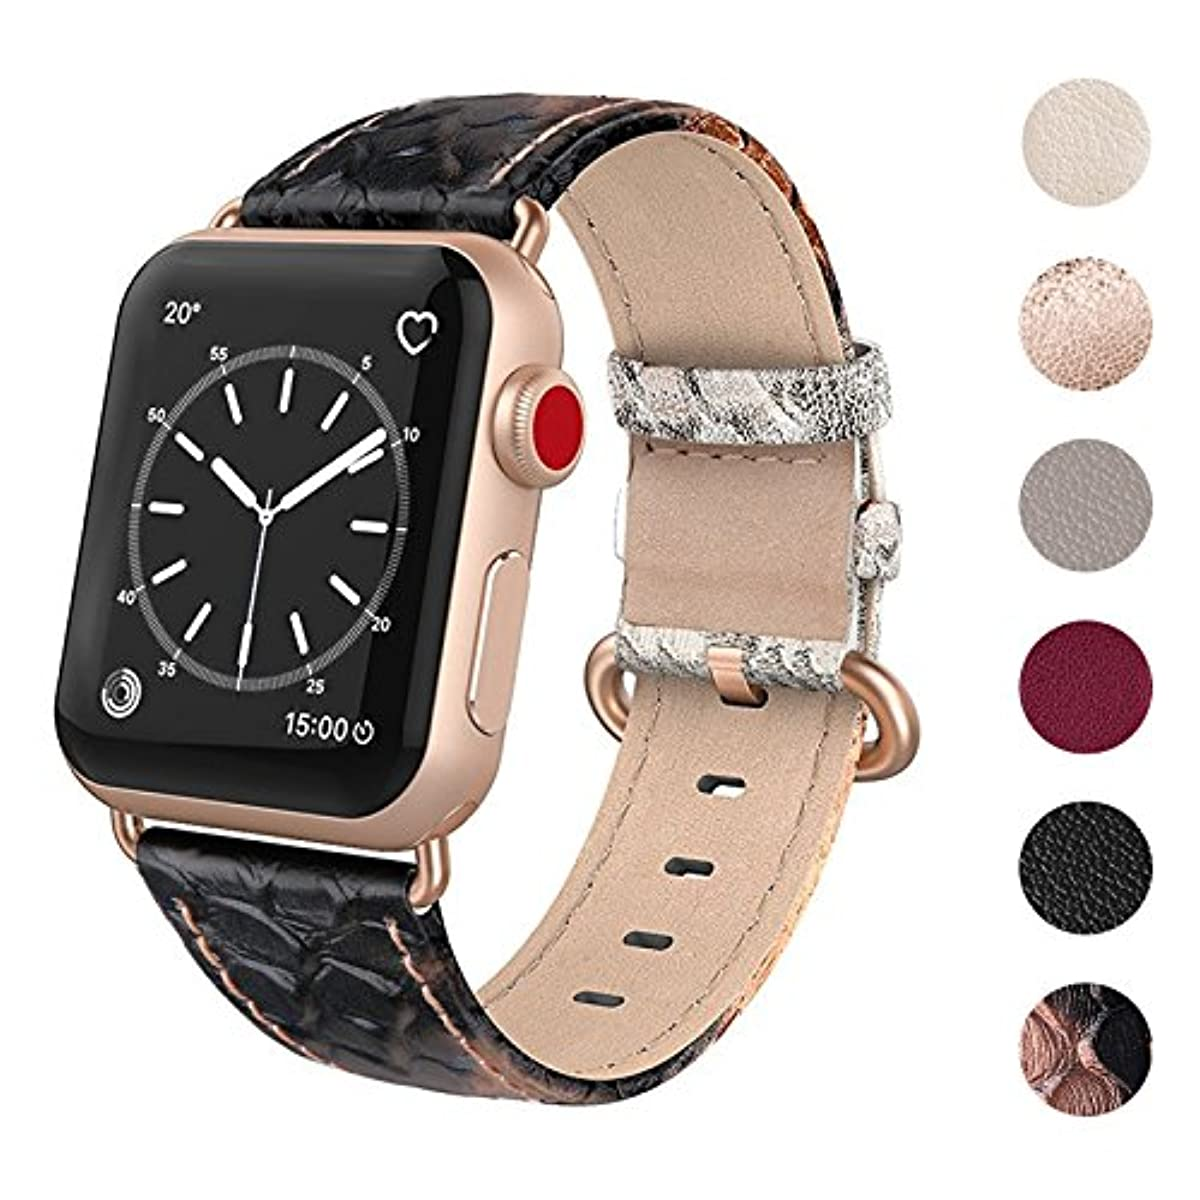 Details about Snake skin Apple Watch Band 38mm 40mm Black Rose old Iwatch  Strap Replacement